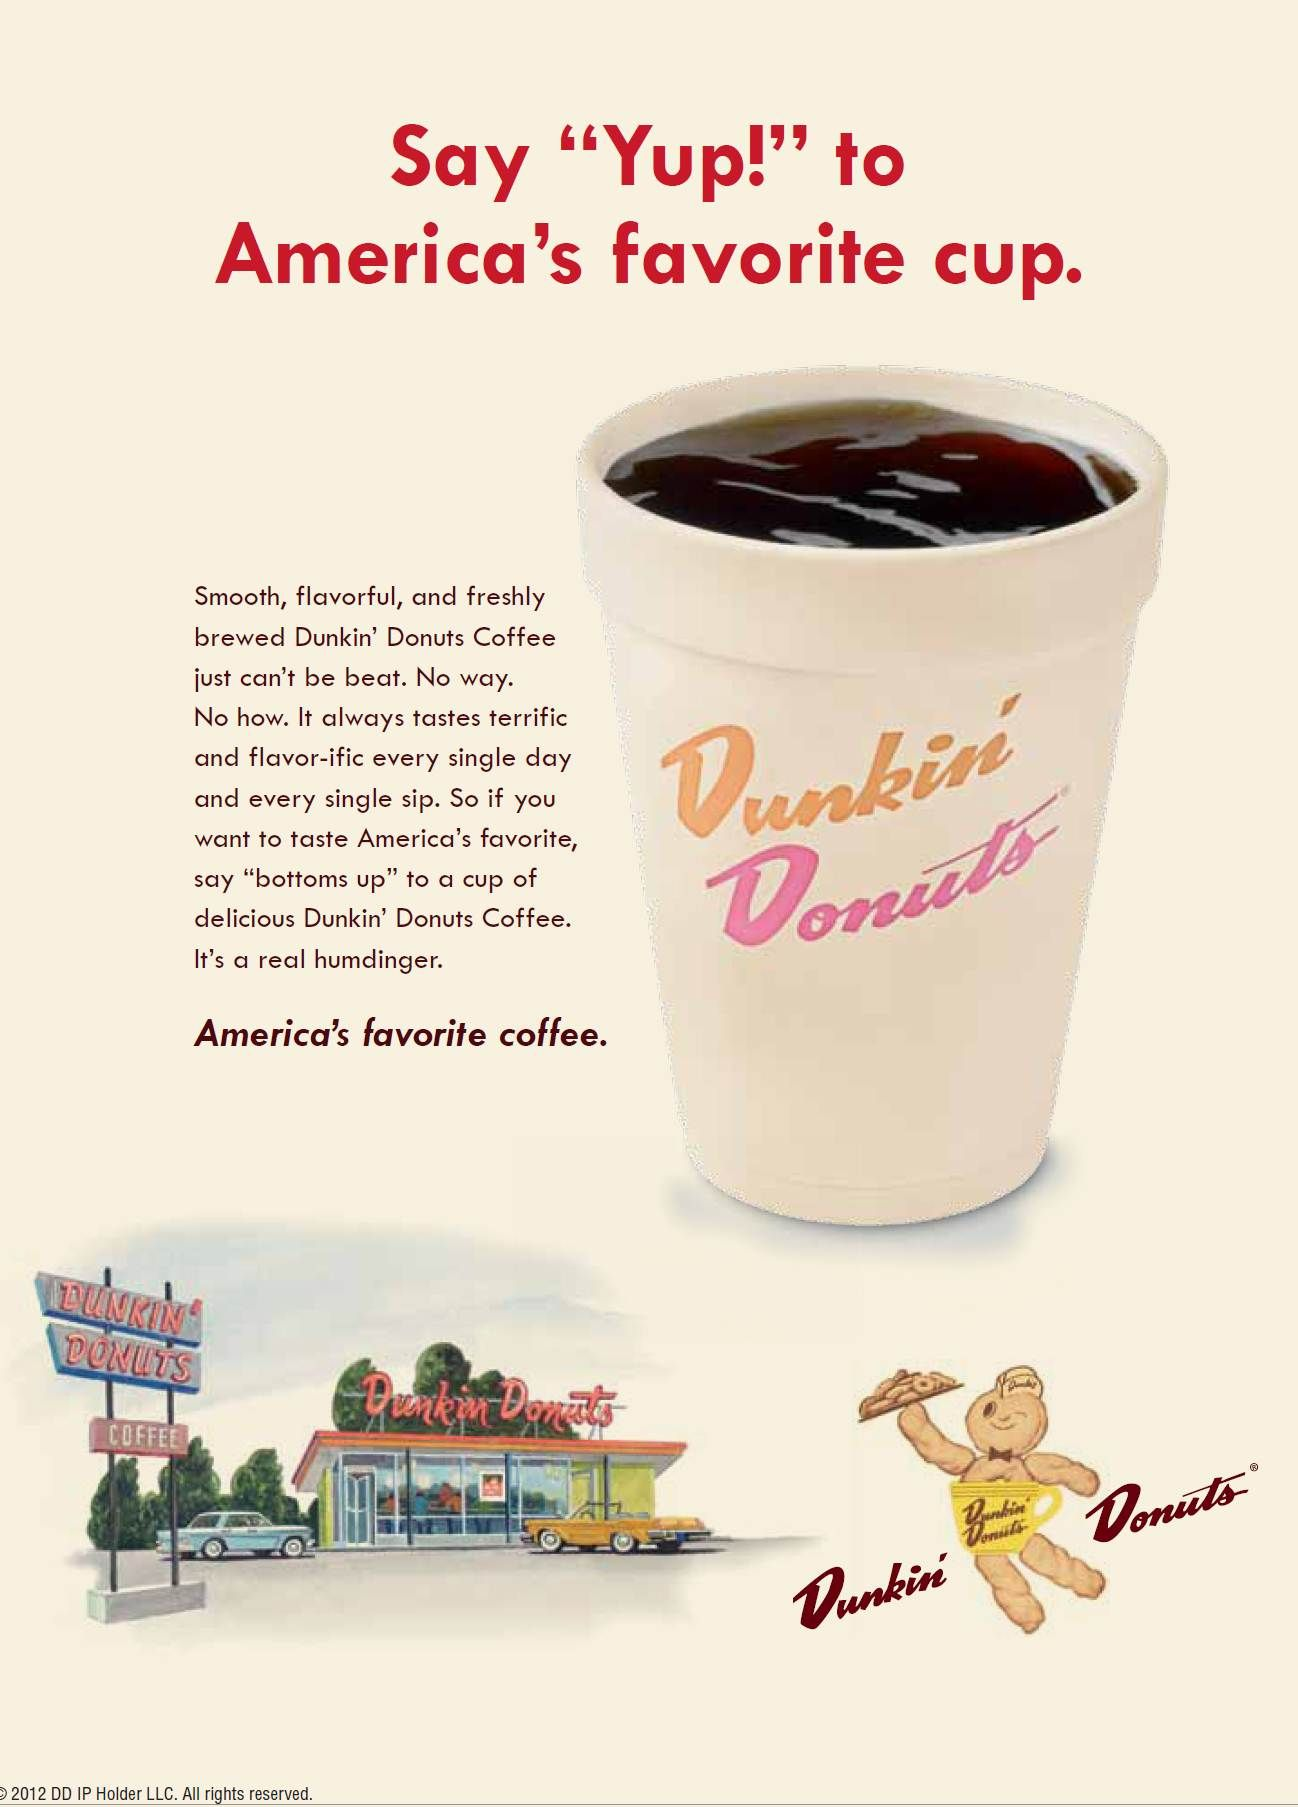 dunkinu0027 donuts coffee c1960 how cool to see the old logo